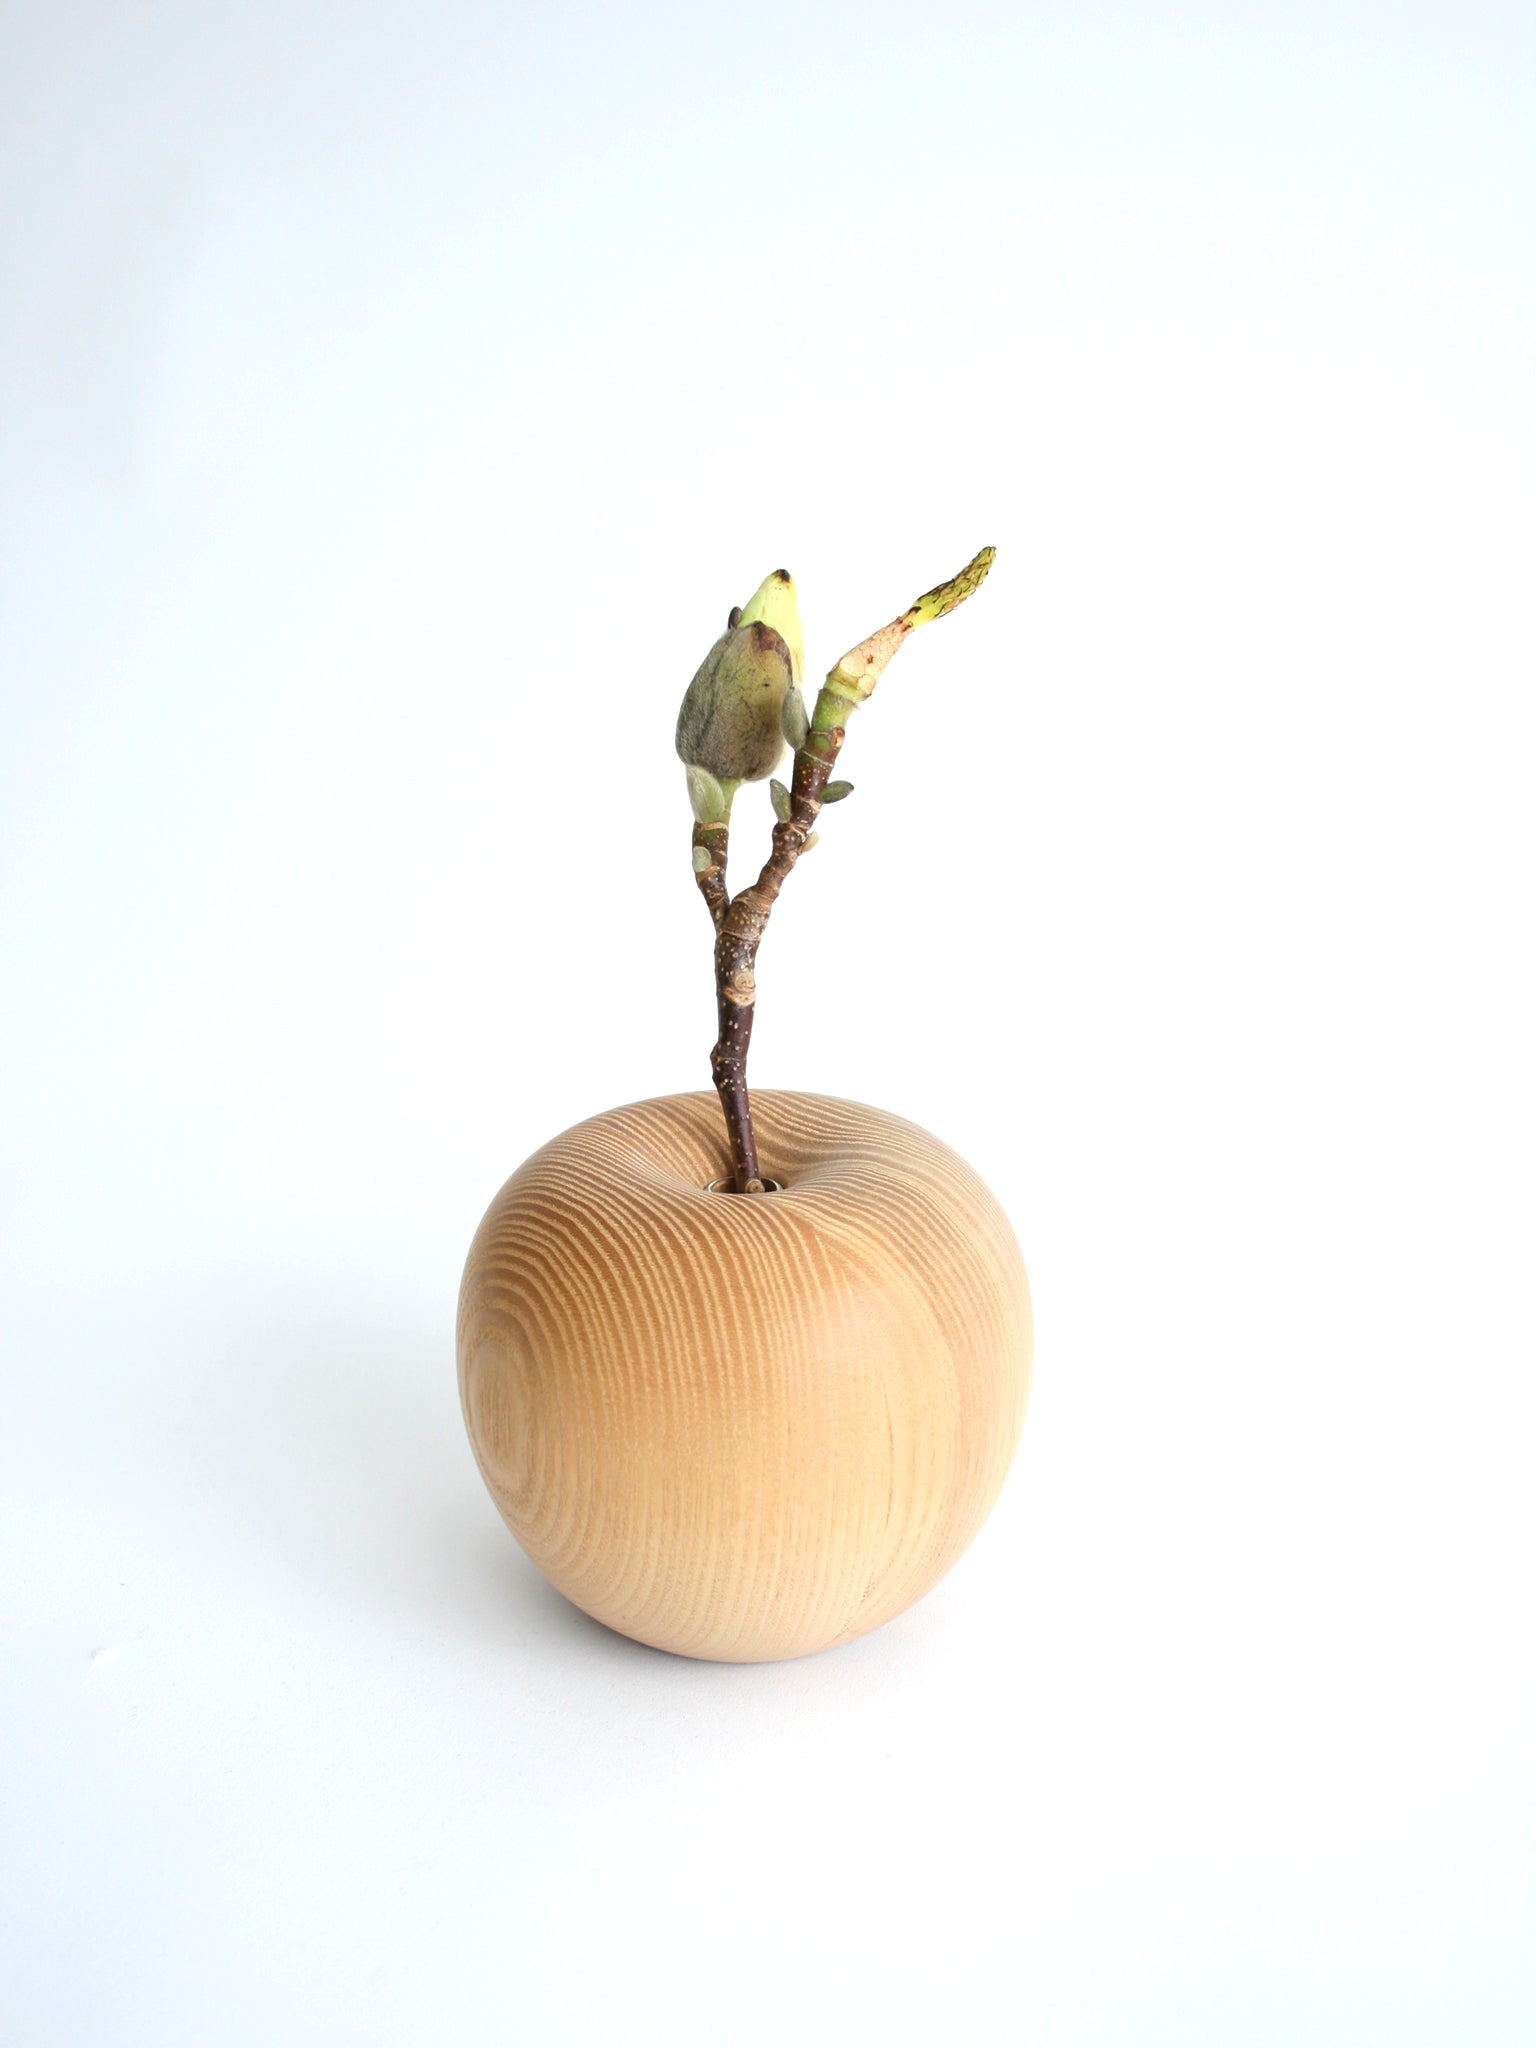 SeeSee Apple flower vase Japan wood